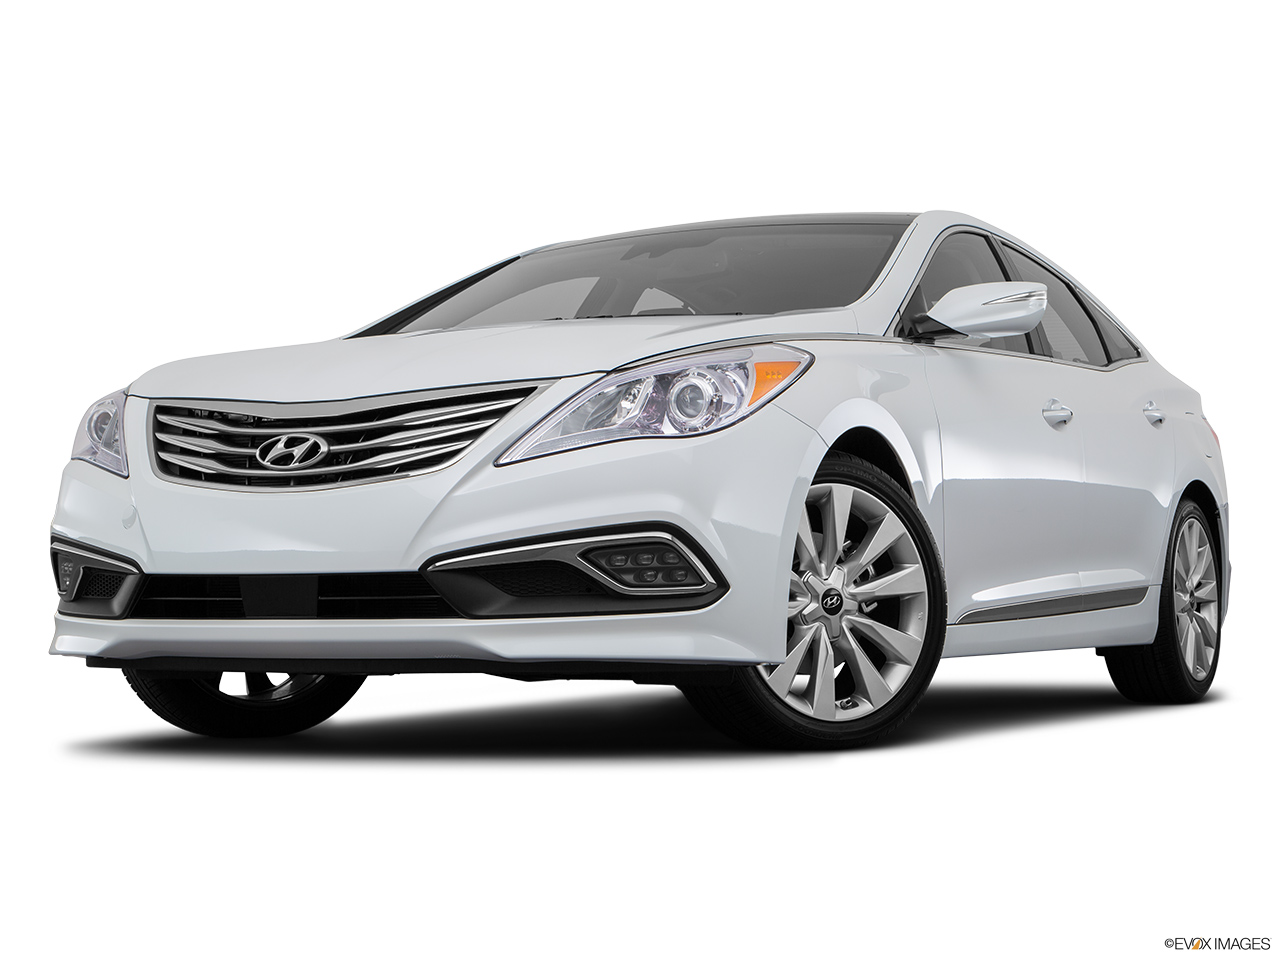 2018 hyundai azera price in india. exellent price hyundai azera 2017 bahrain front angle view low wide perspective in 2018 hyundai azera price in india h